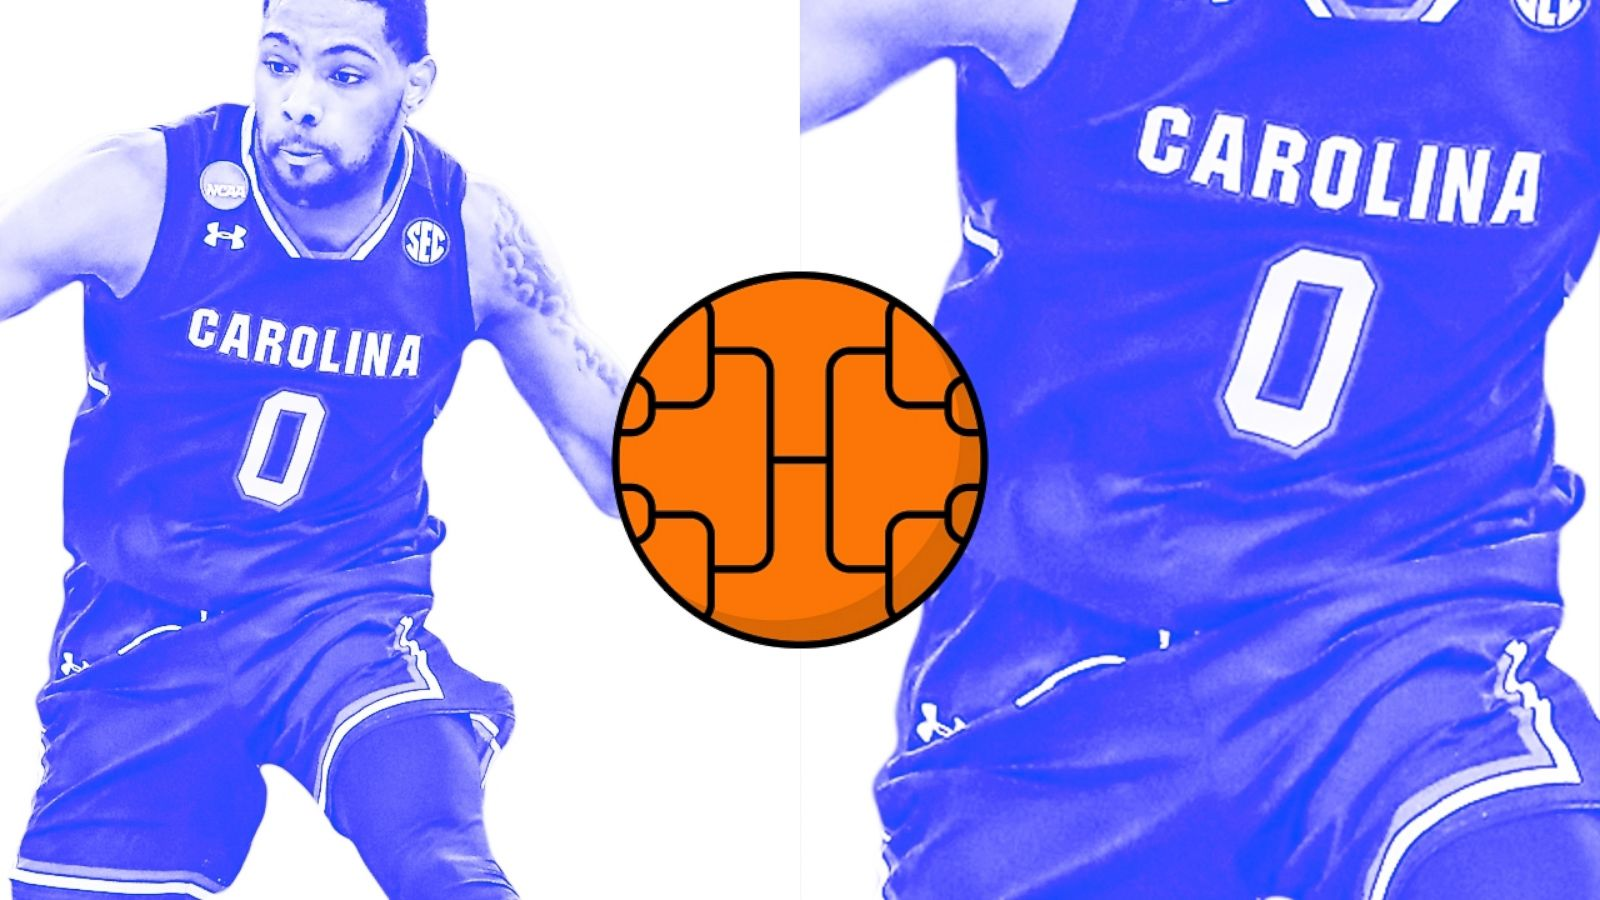 South Carolina And Oregon Took Unlikely Roads To The Final Four